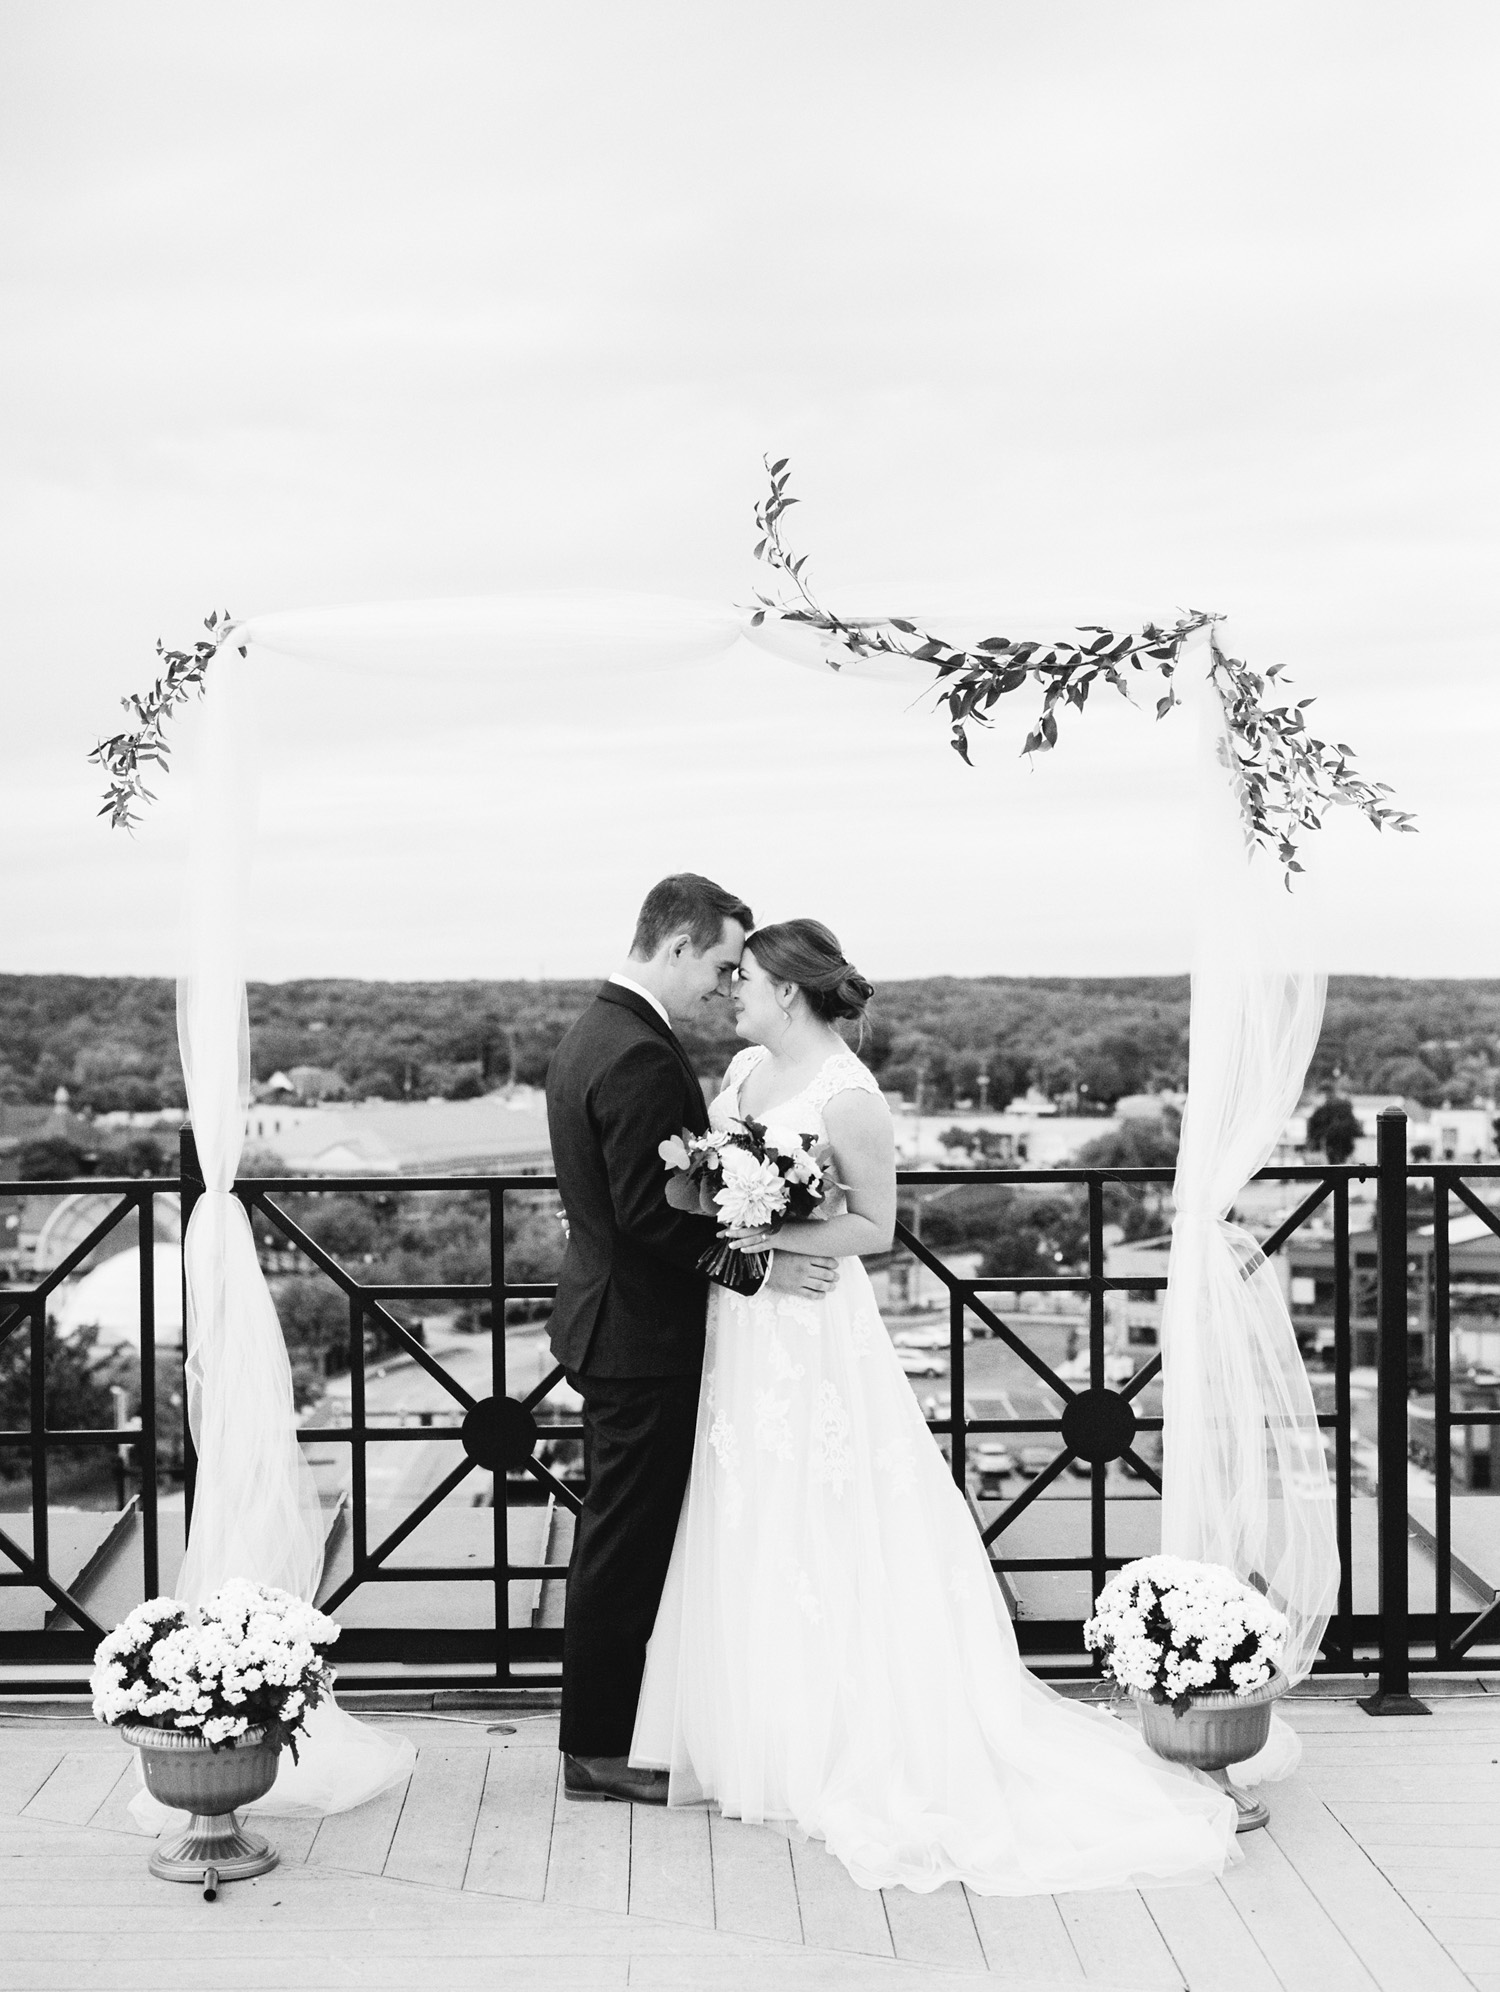 A couple embraces under the ceremony arch on a downtown Kalamazoo rooftop